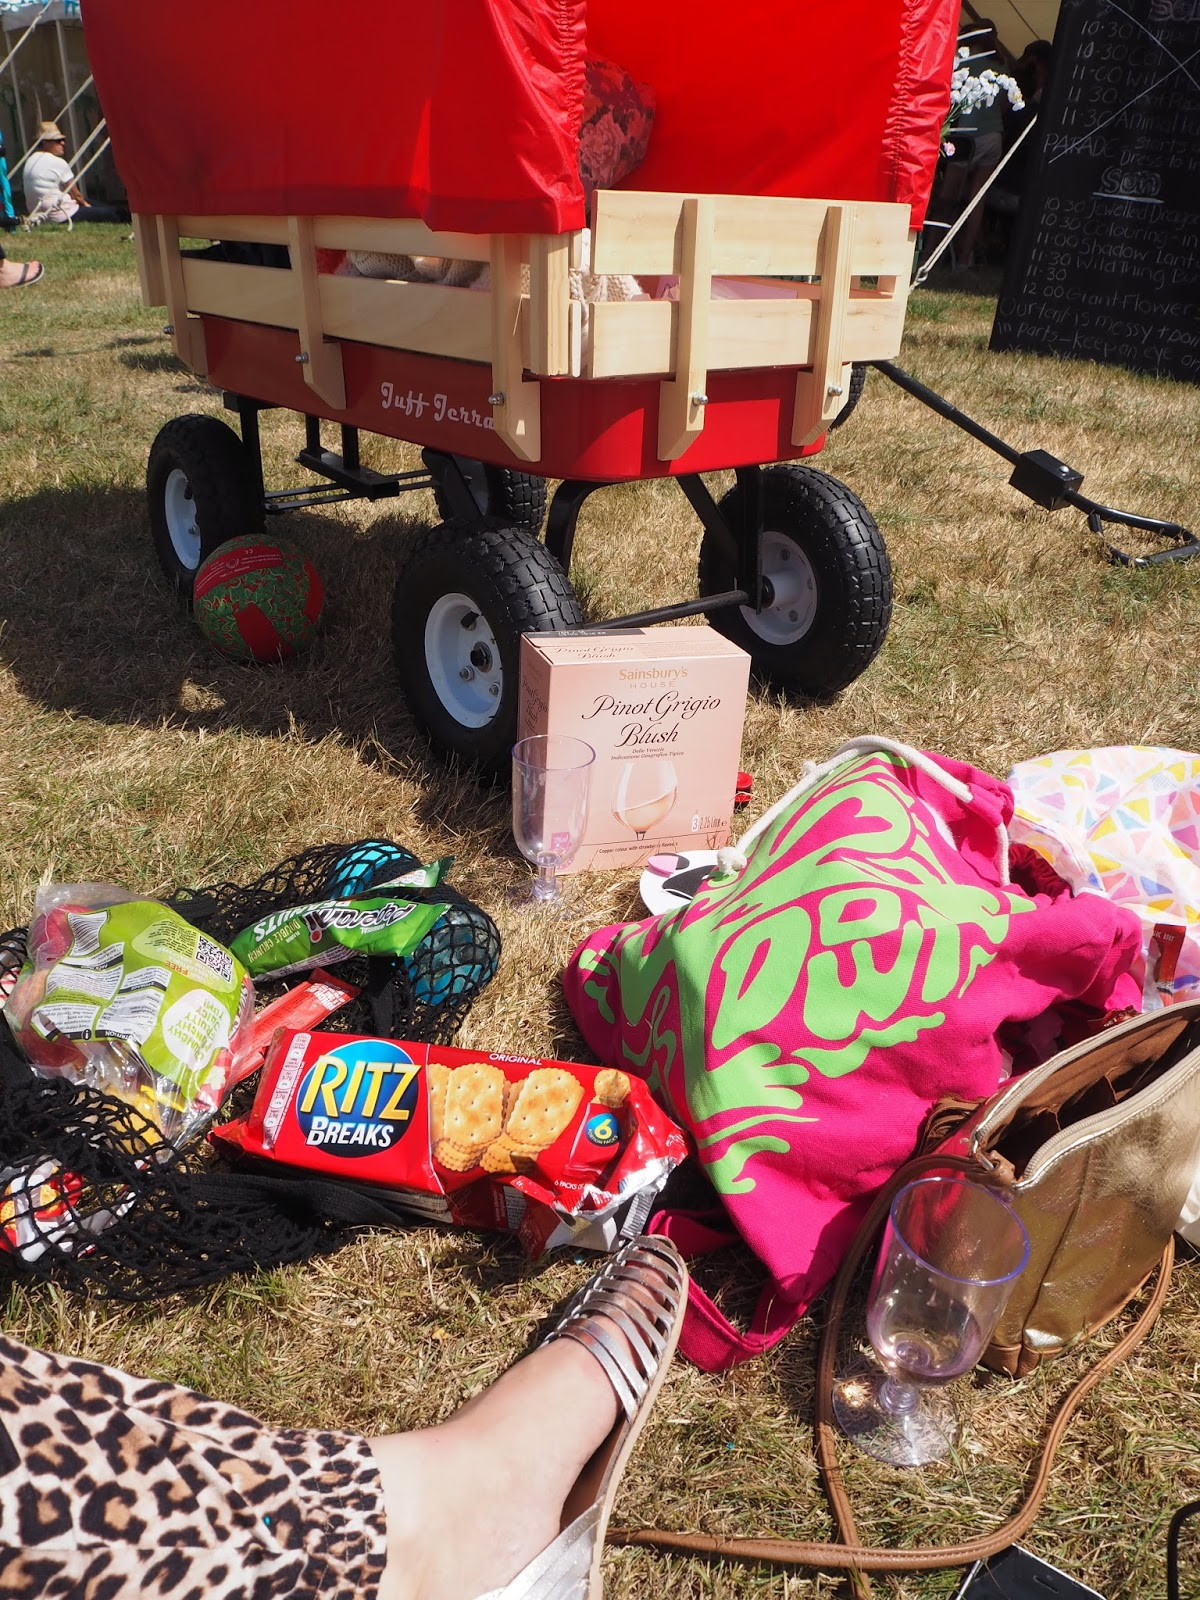 mamasVIB | V. I. BASH: An A-Z of our first Camp Bestival - Part Two | camp bestival | forest lulworth cattle | camp bestival review | festivals | family festival | camp bestiavl 2015 | festival | mamasVIb | ear defenders | what to pack for a festival | festival essentials | festival tips | a-z of festivals | get involved PR| weekend away | family weekend brummymummyof2 | youbbymemummy | the twinkle diaries | bloggers | weekend away | mothercare | clothes | fashion | kids style | festival fashion | festival fashion essentials | what to take to a festival | a-z | bonita turner